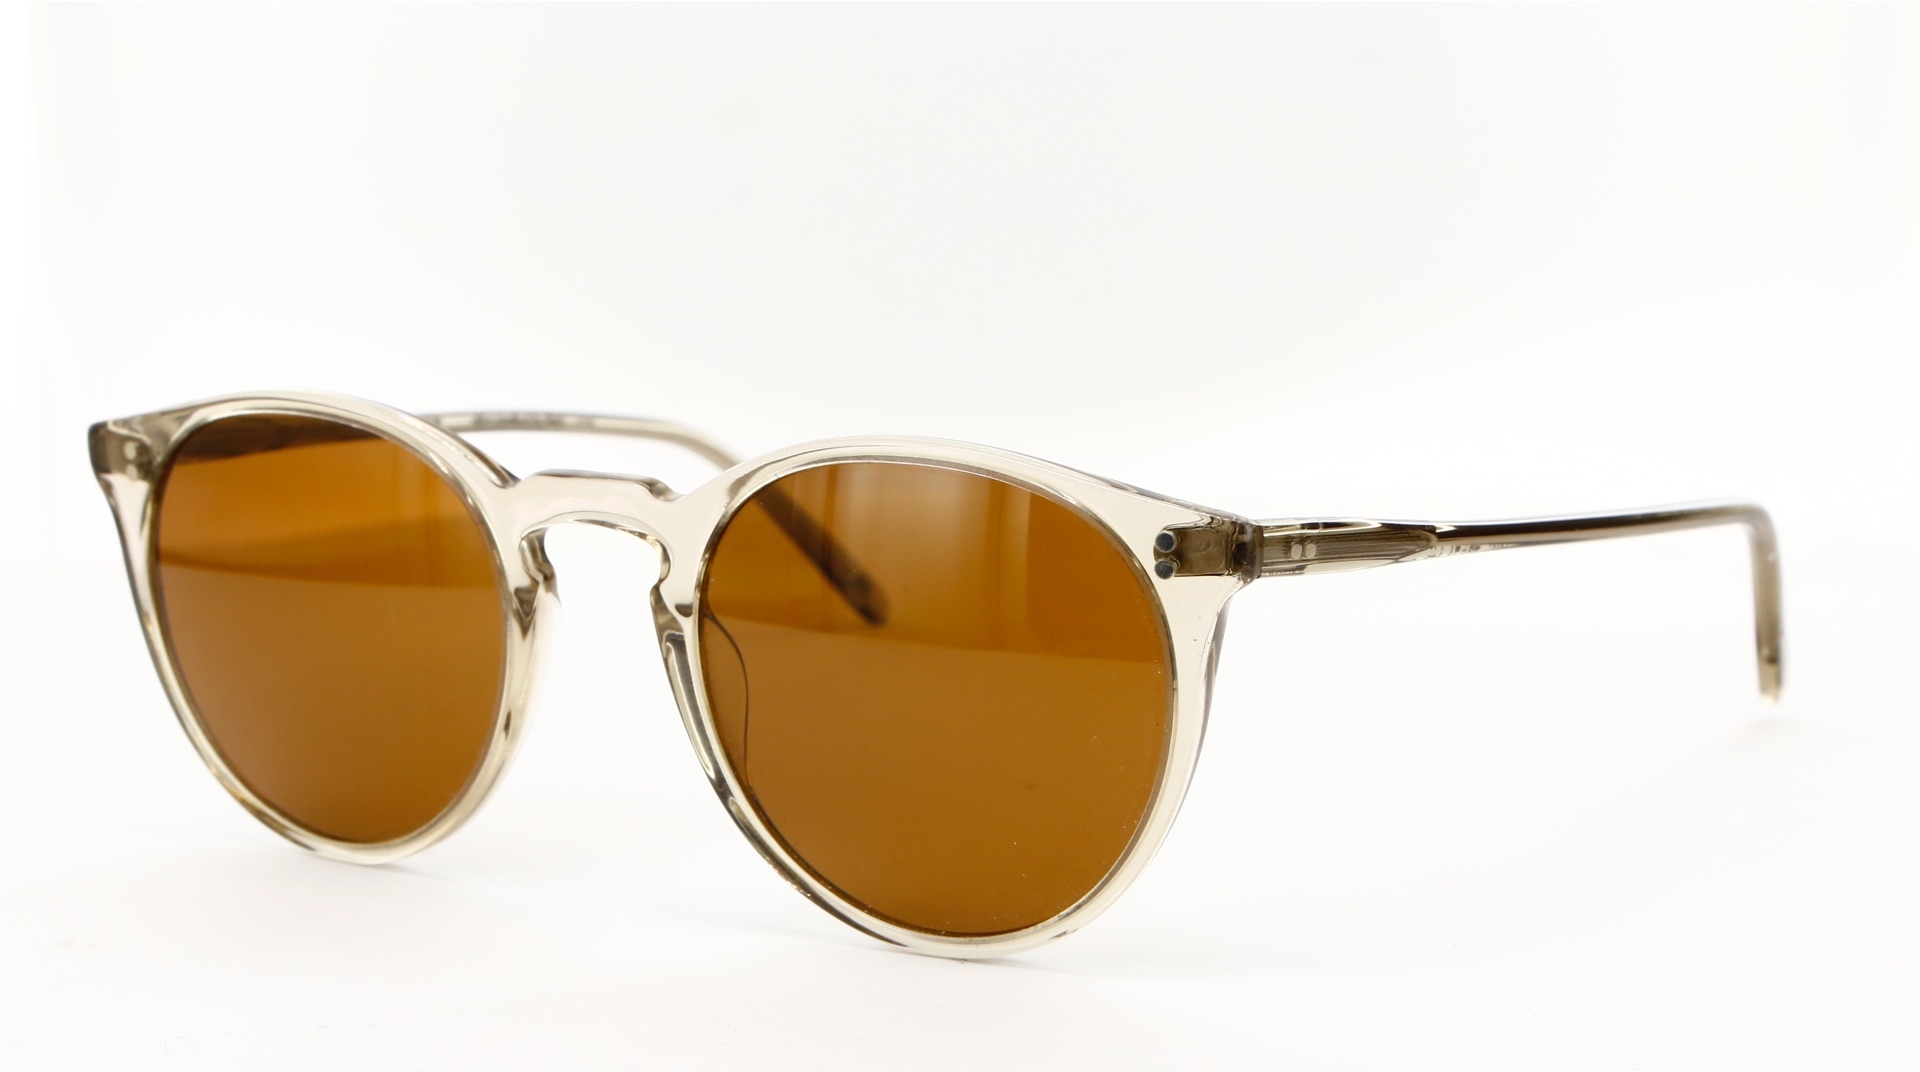 ad87d8259801 Oliver Peoples sunglasses - ref  74859